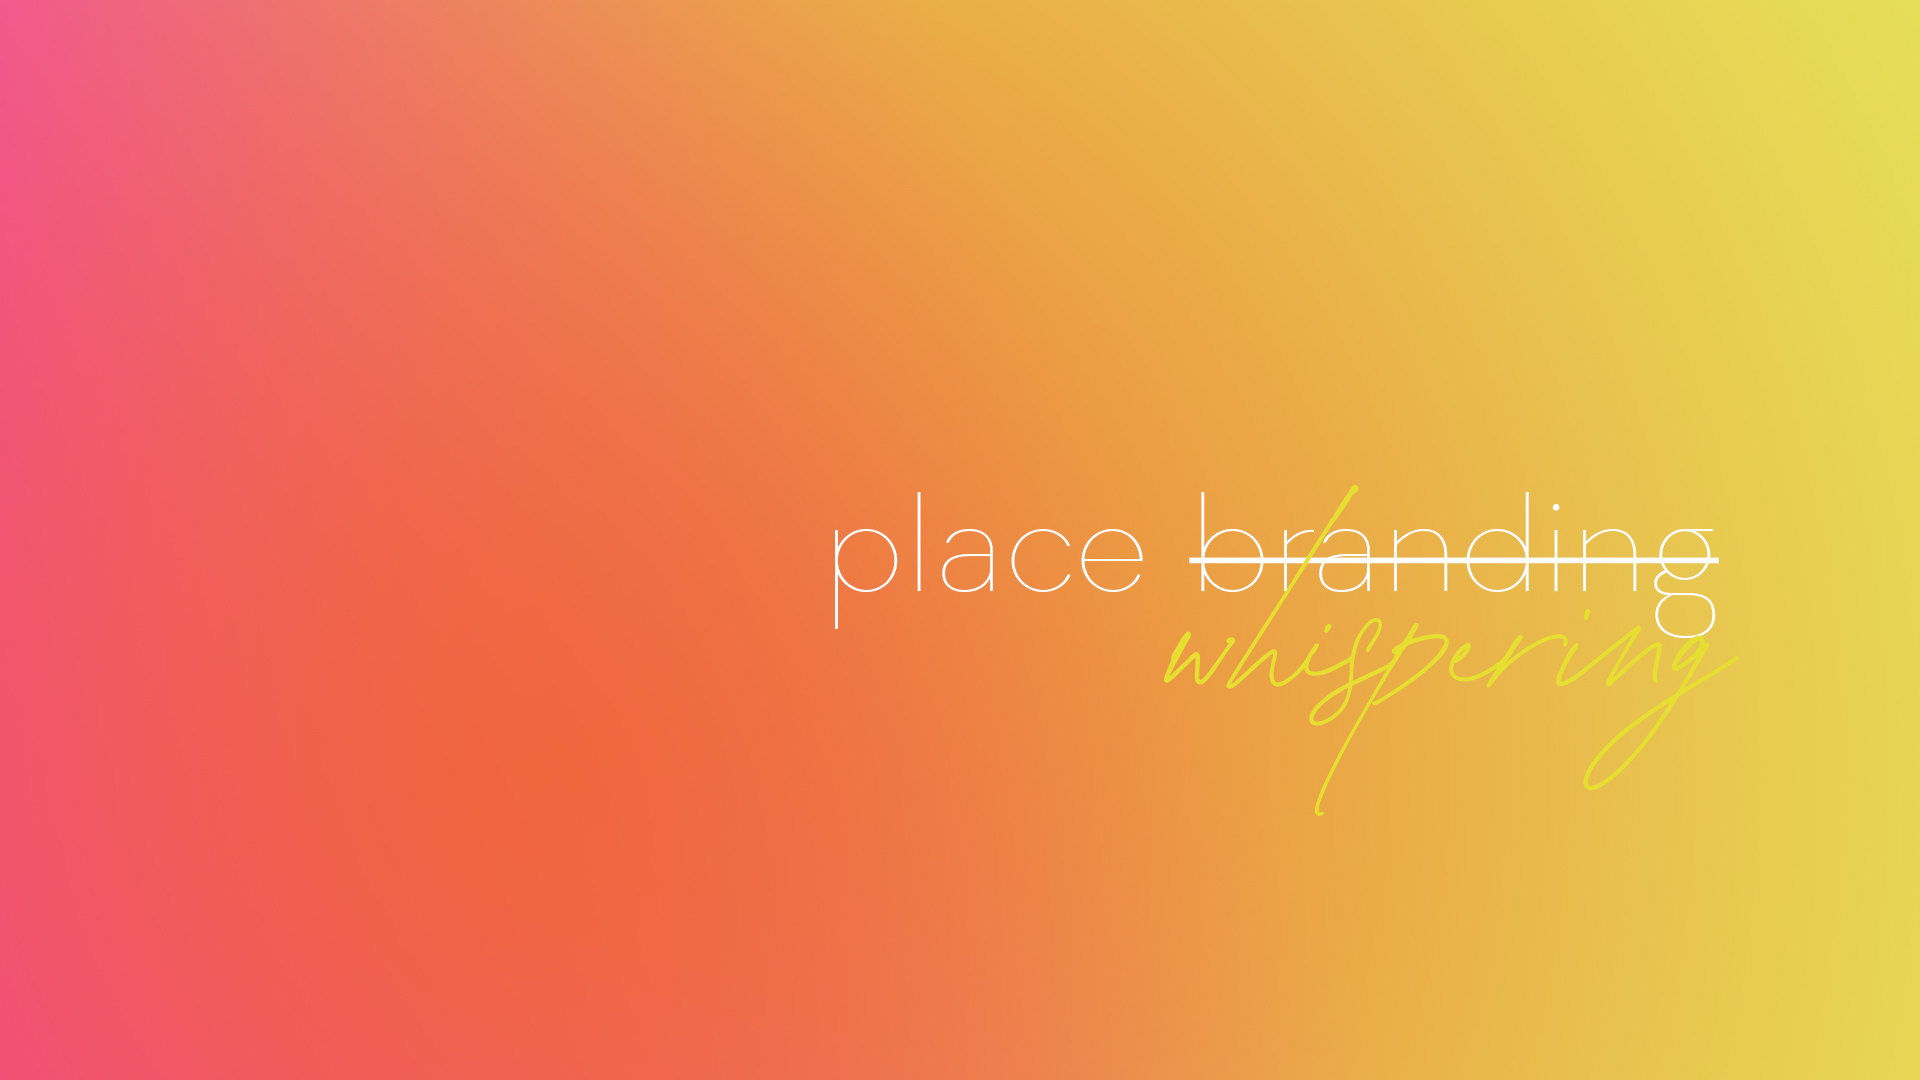 """Place branding is Place """"whispering""""..."""